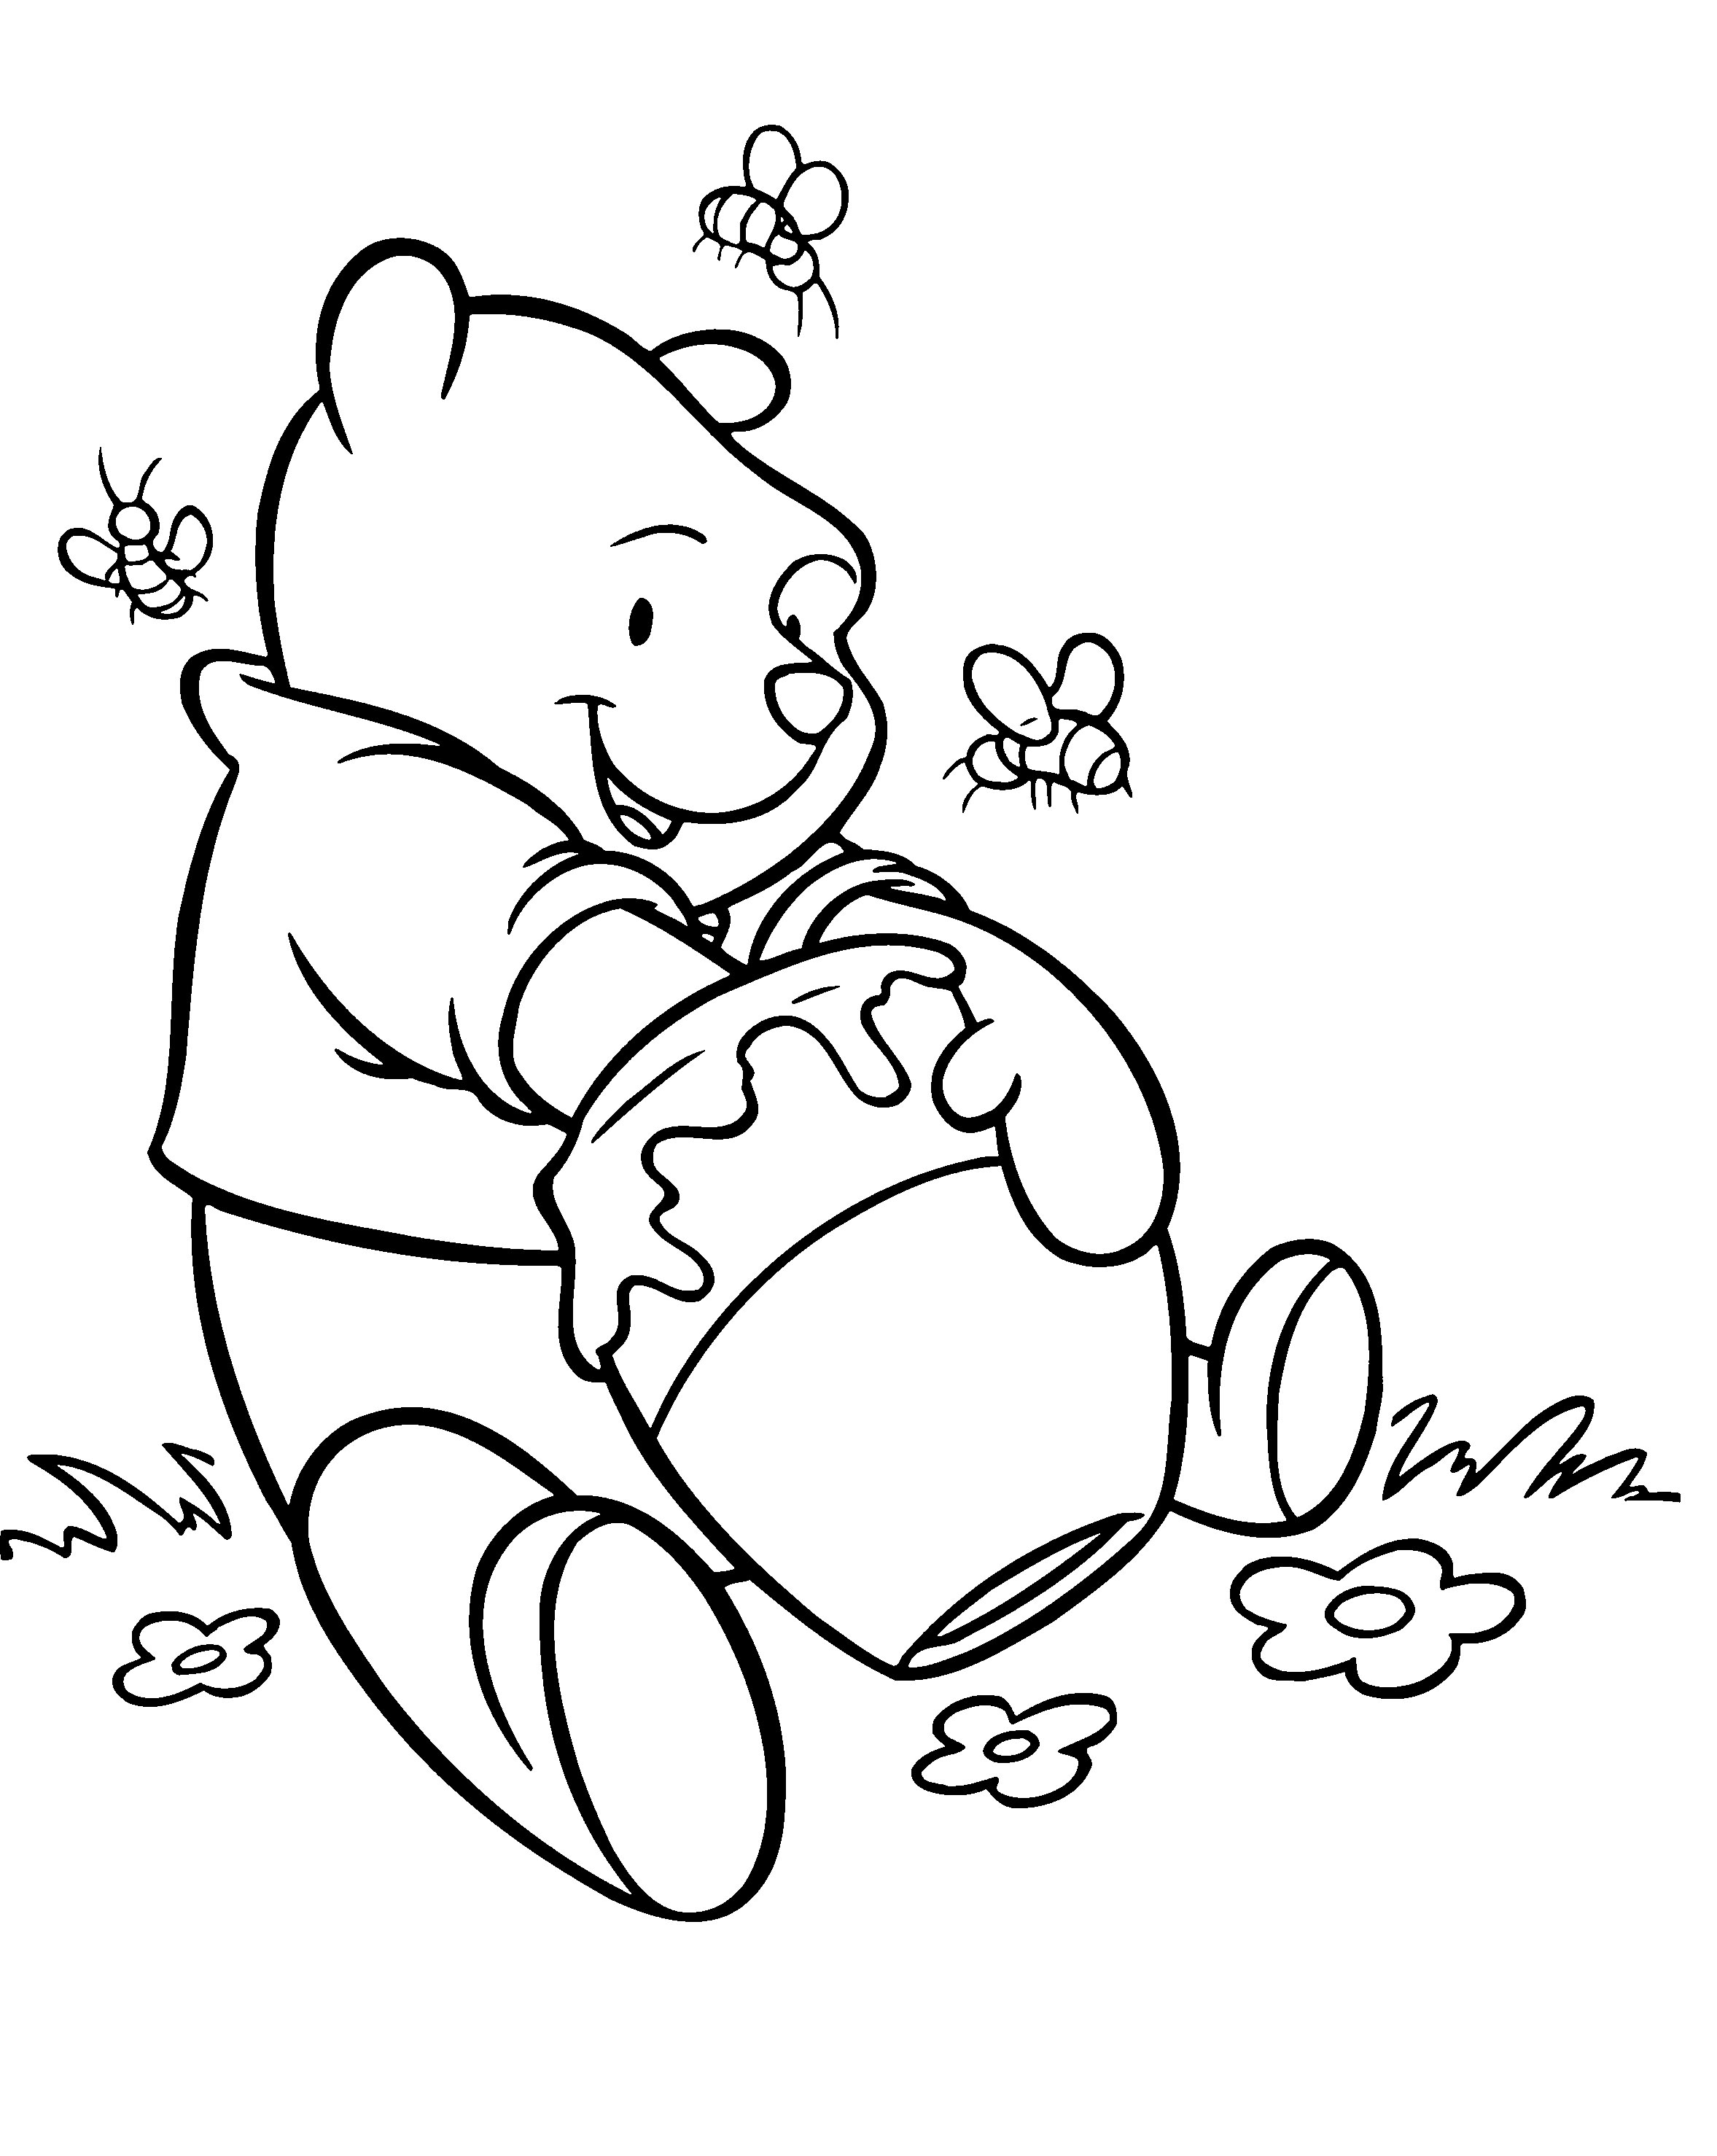 winnie the pooh drawing winnie the pooh line drawing free download on clipartmag pooh winnie the drawing